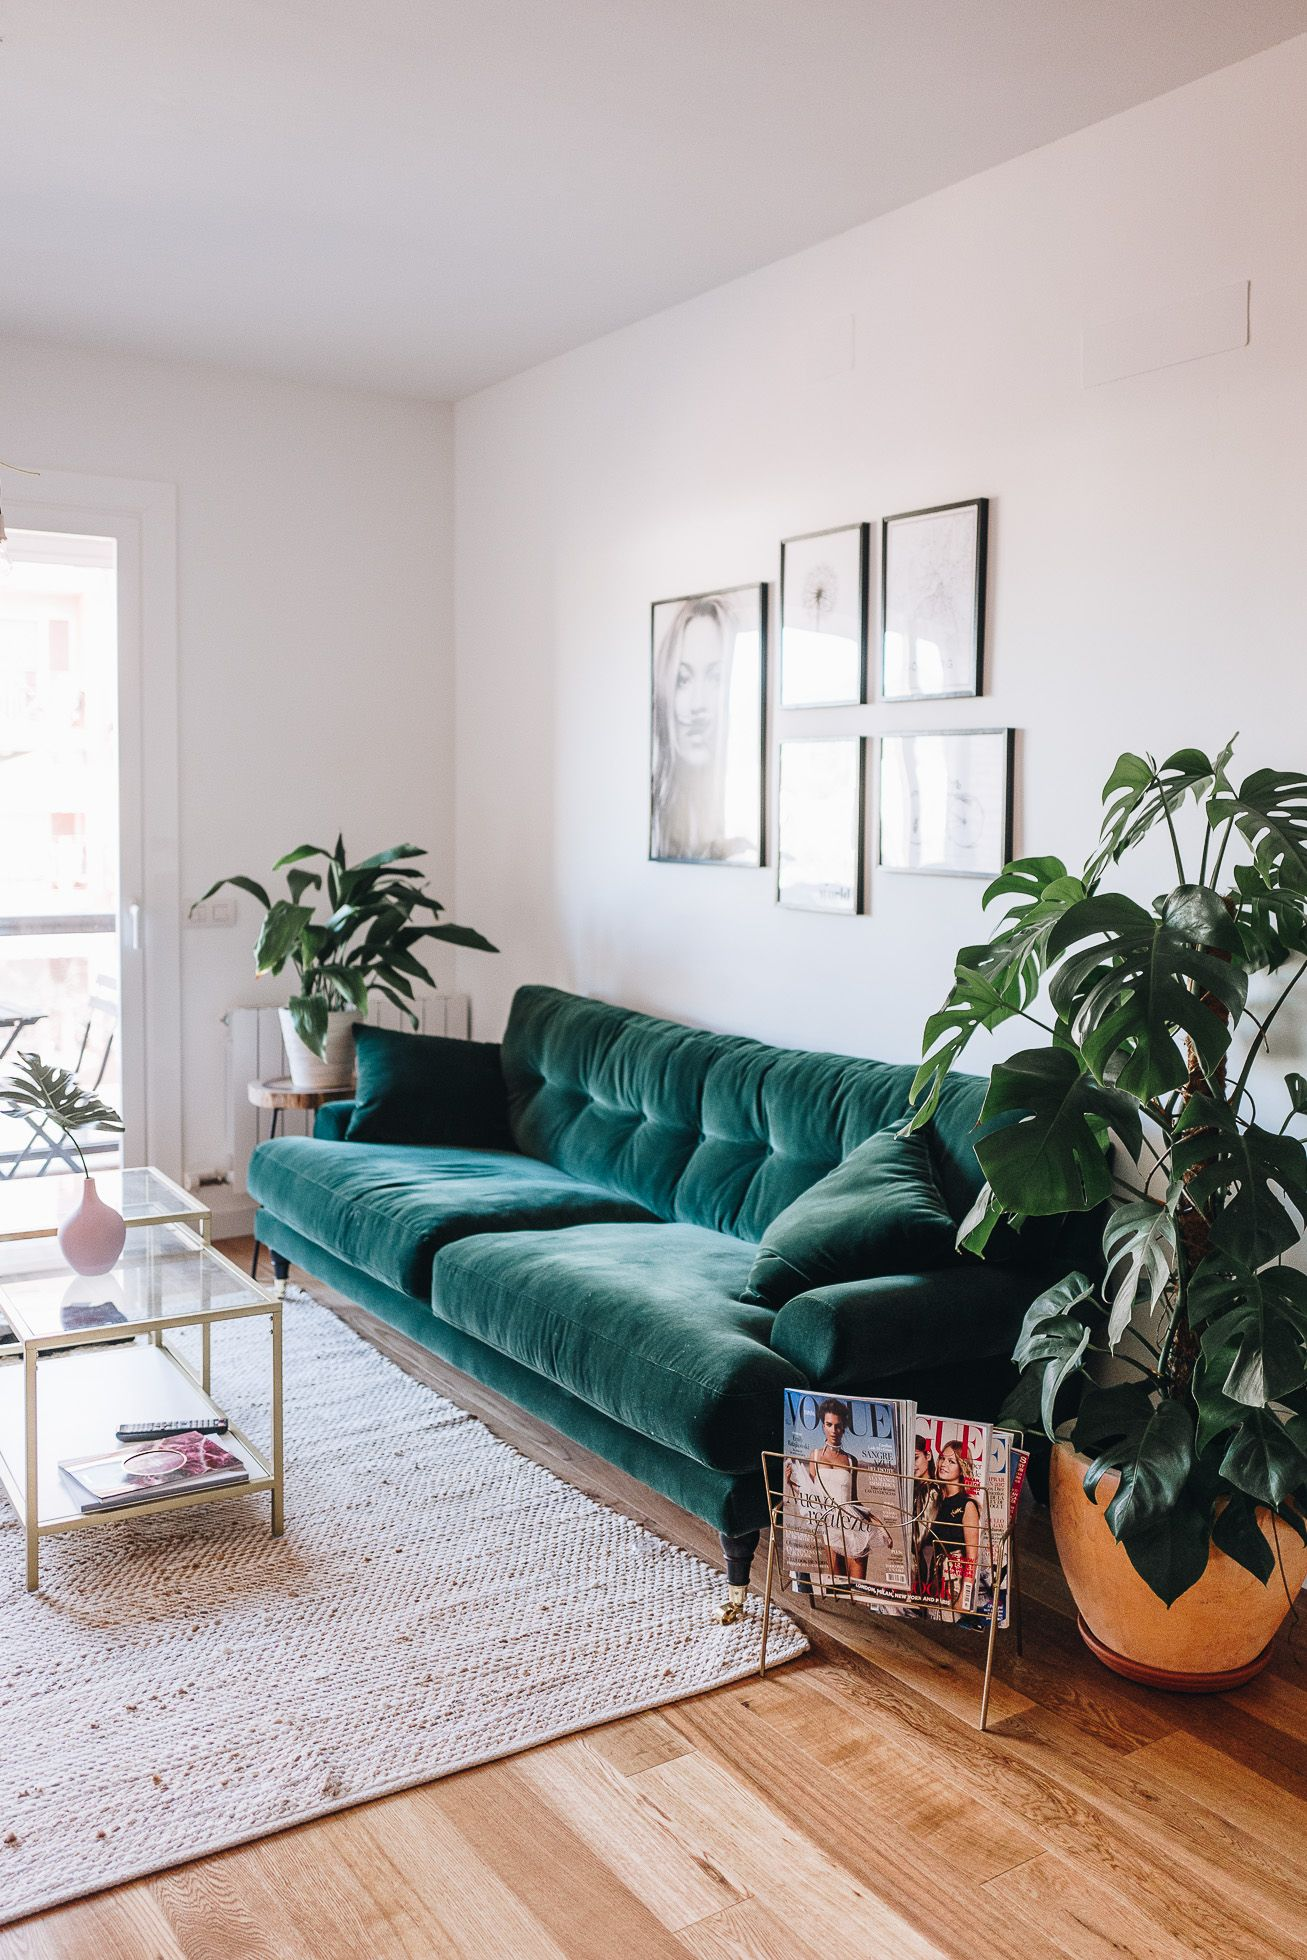 Living room with a green couch.  Source: Pinterest